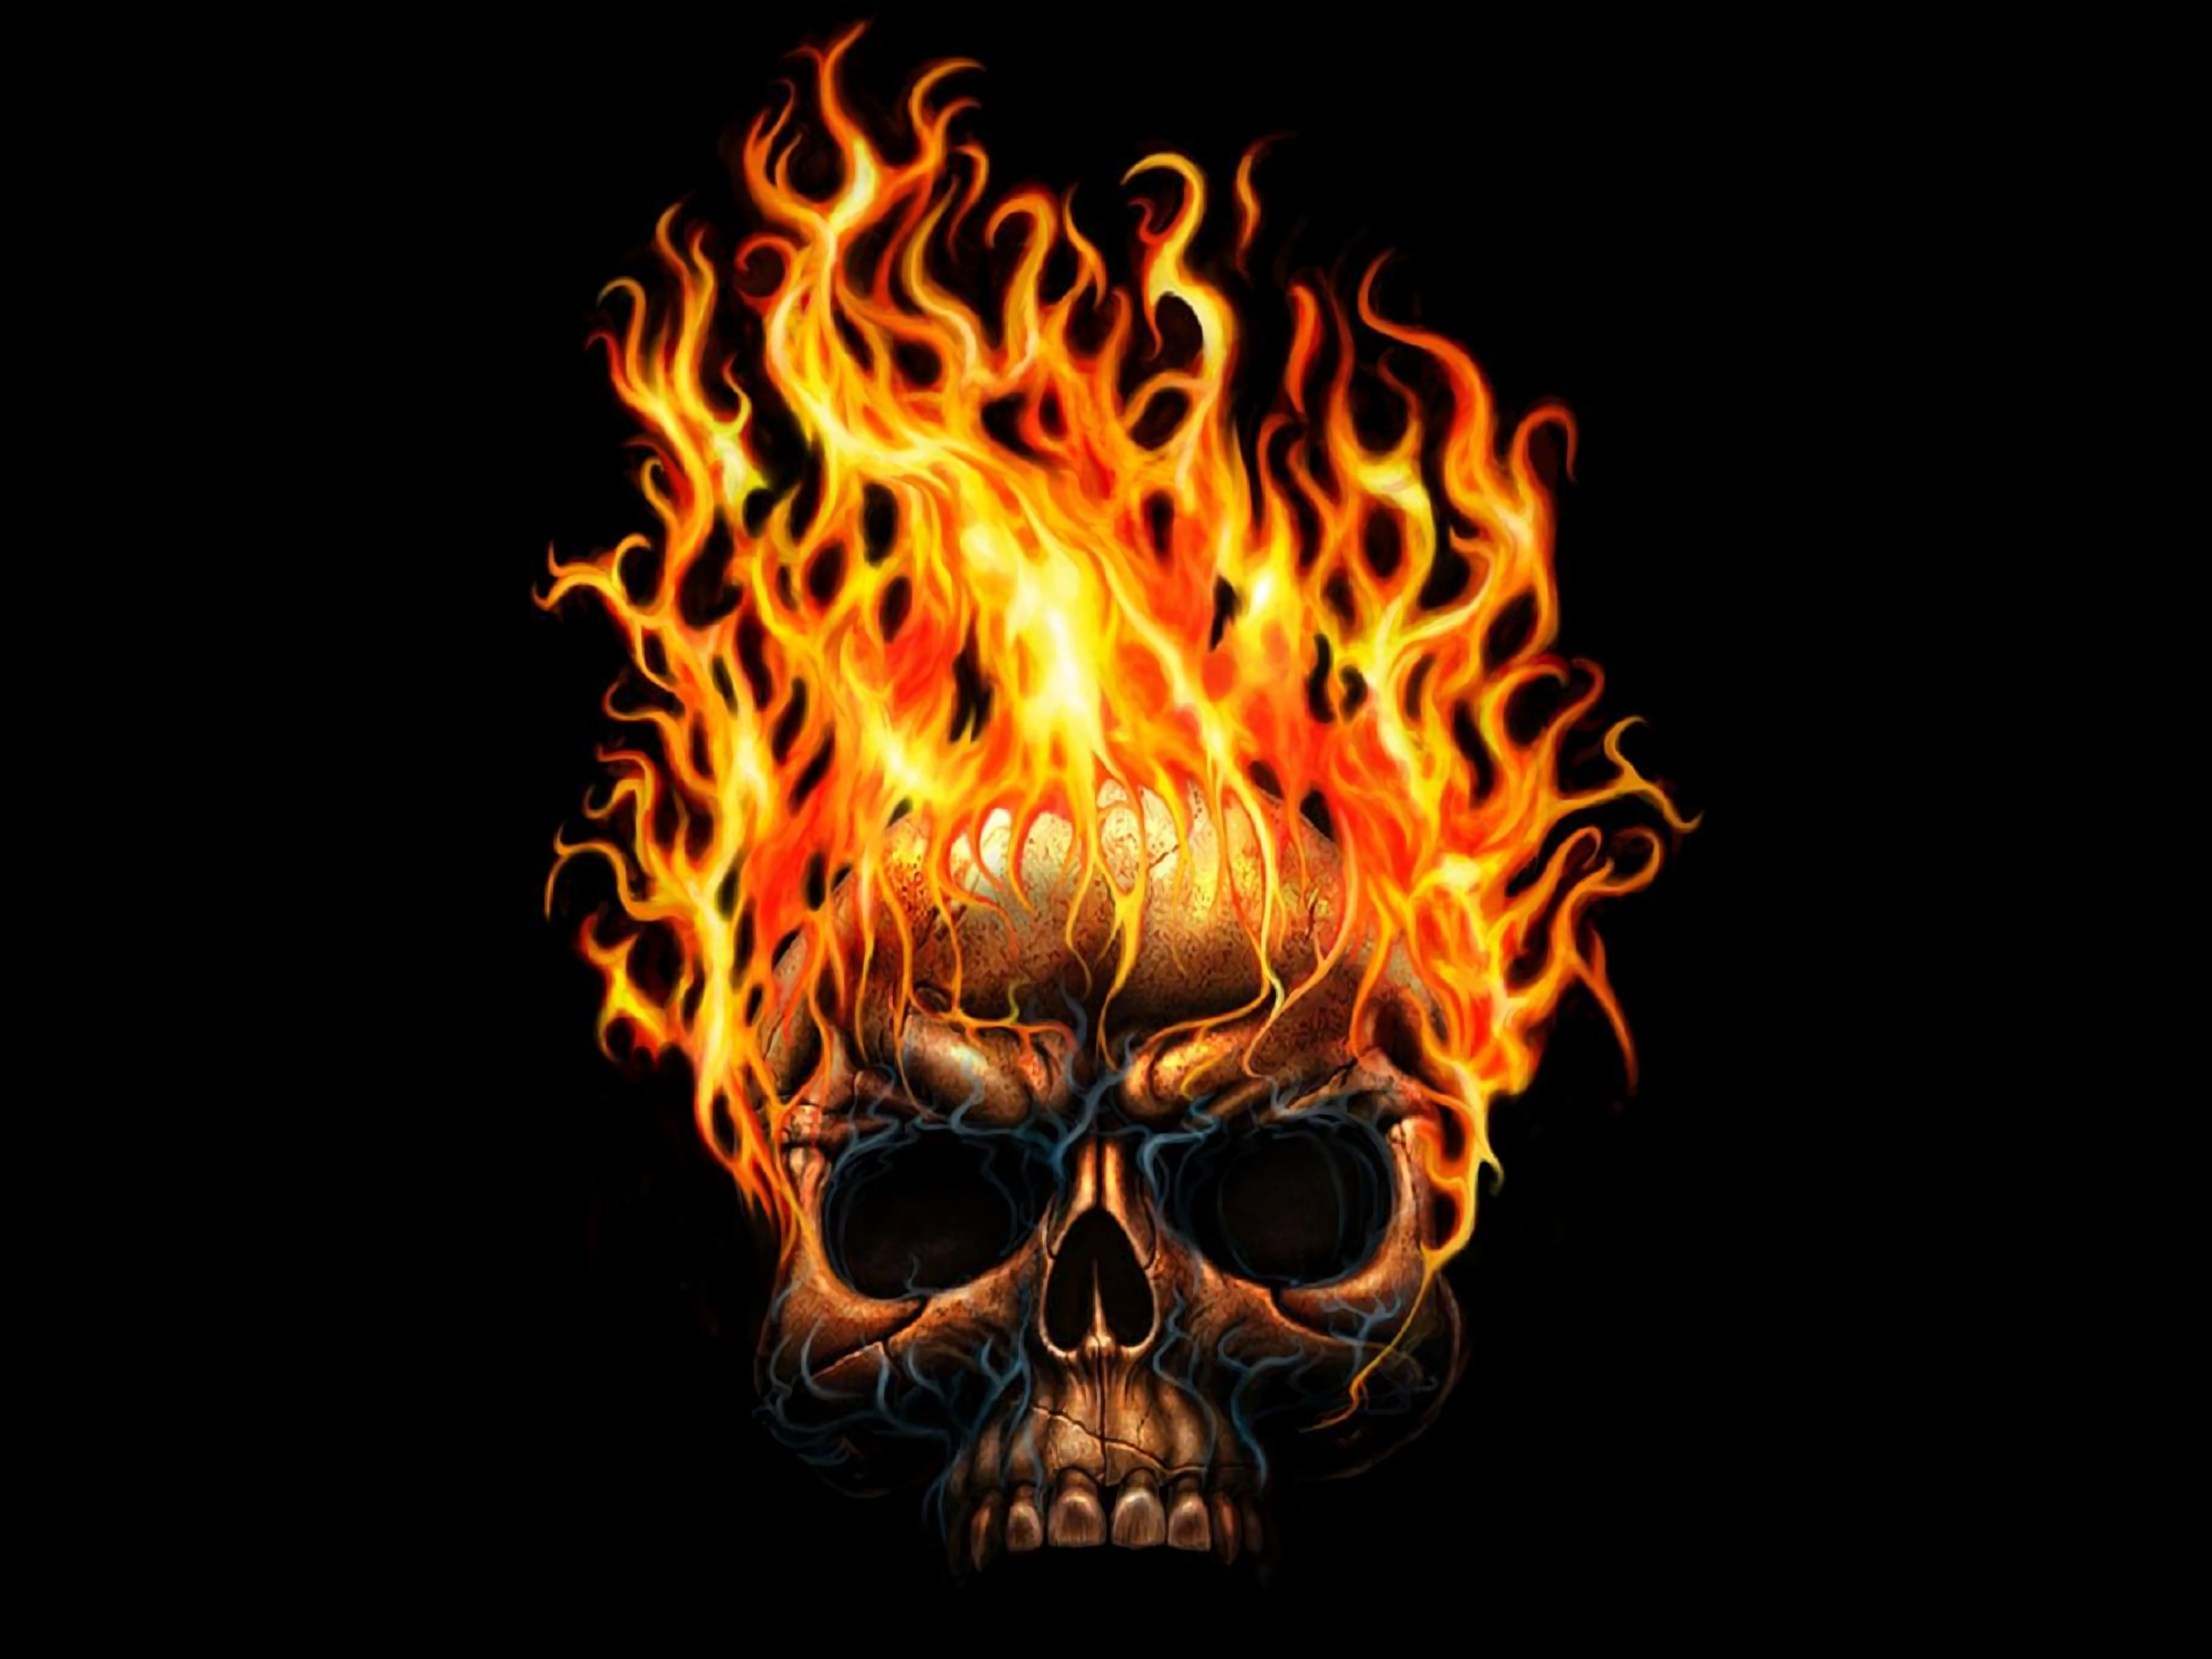 717 Skull HD Wallpapers  Background Images - Wallpaper Abyss